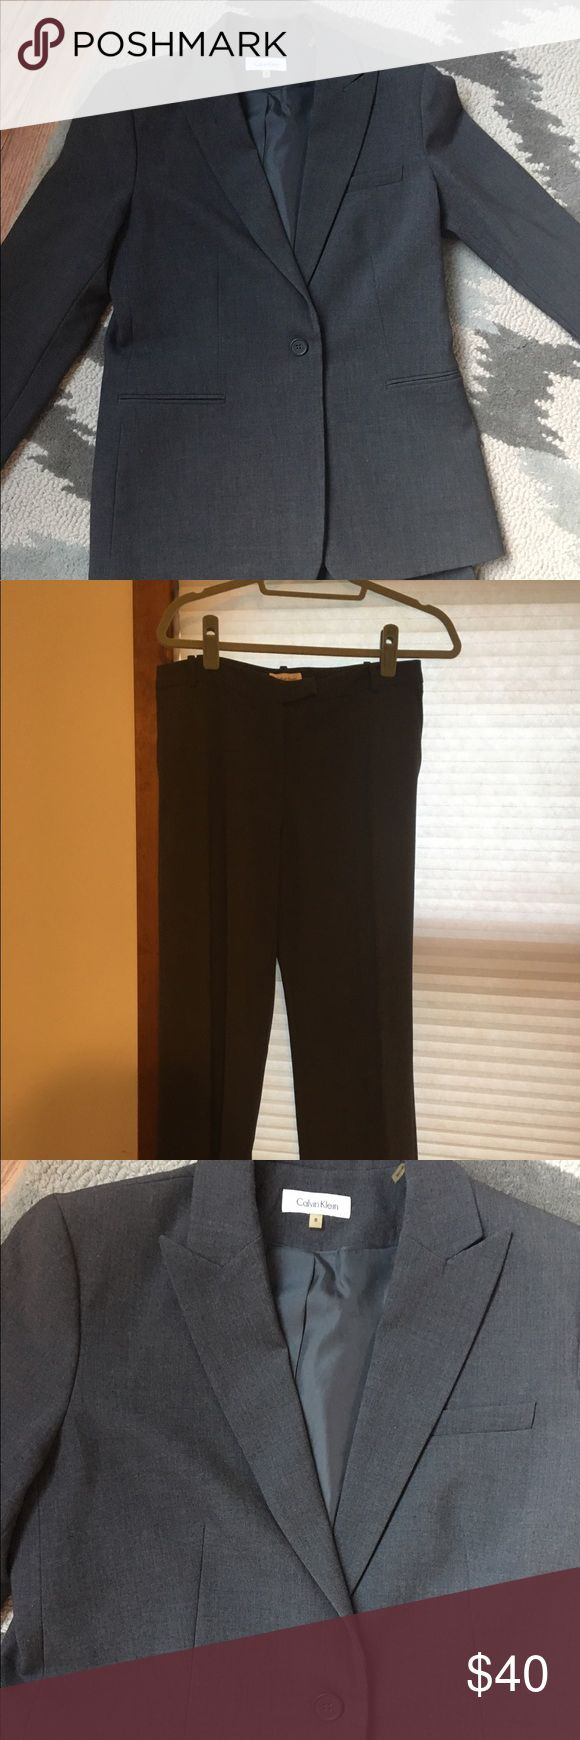 Calvin Klein suit Grey Calvin Klein pants suit. Very professional looking. Pants have thin waistband and are straight fit. Jacket is lined. Calvin Klein Jackets & Coats Blazers